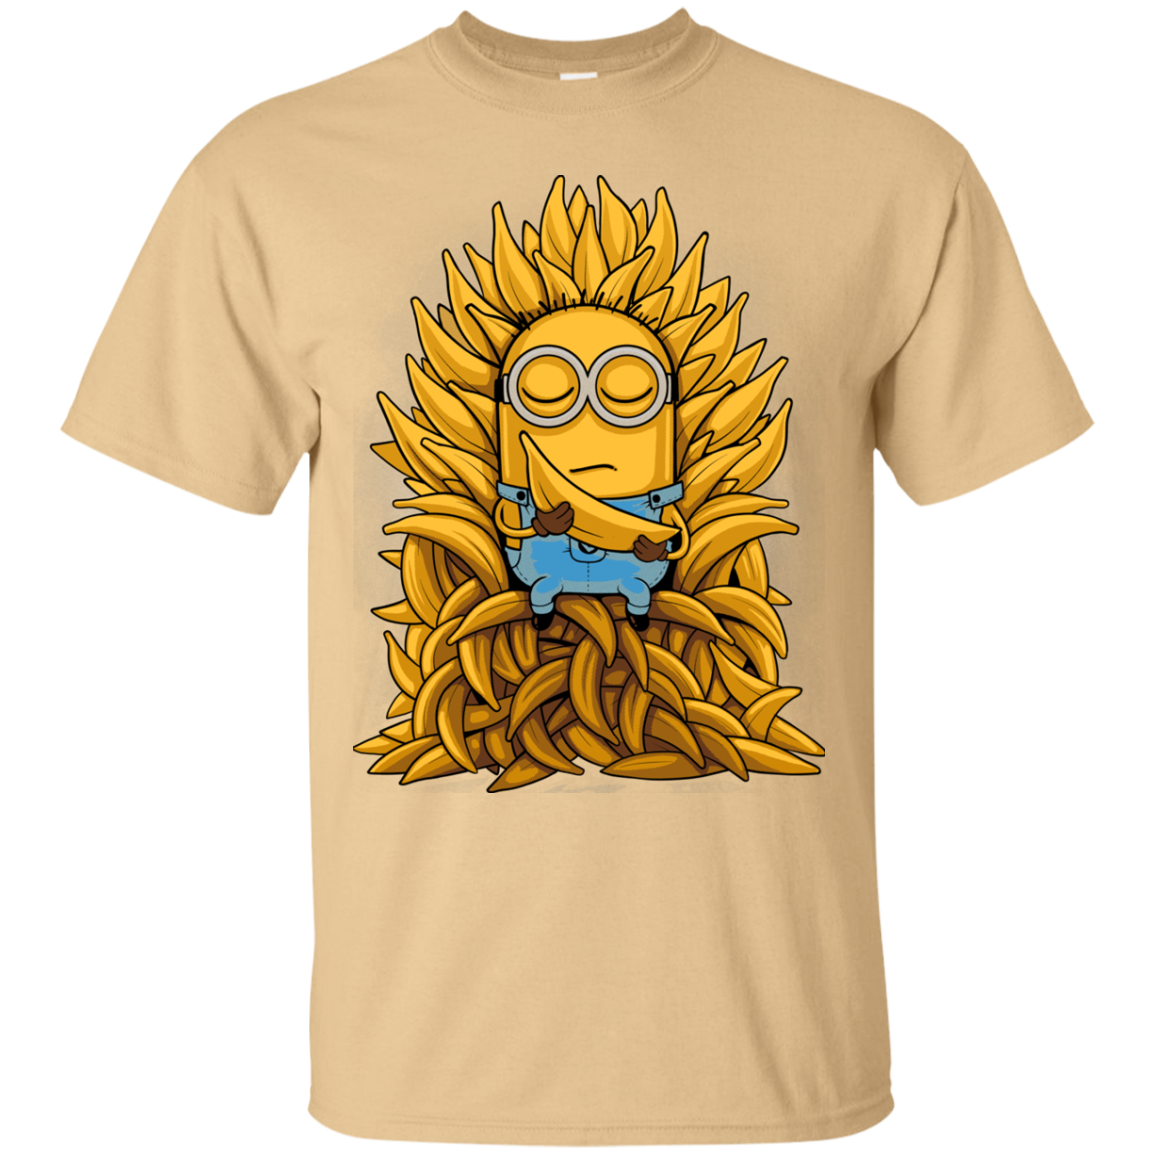 Banana Throne T-Shirt